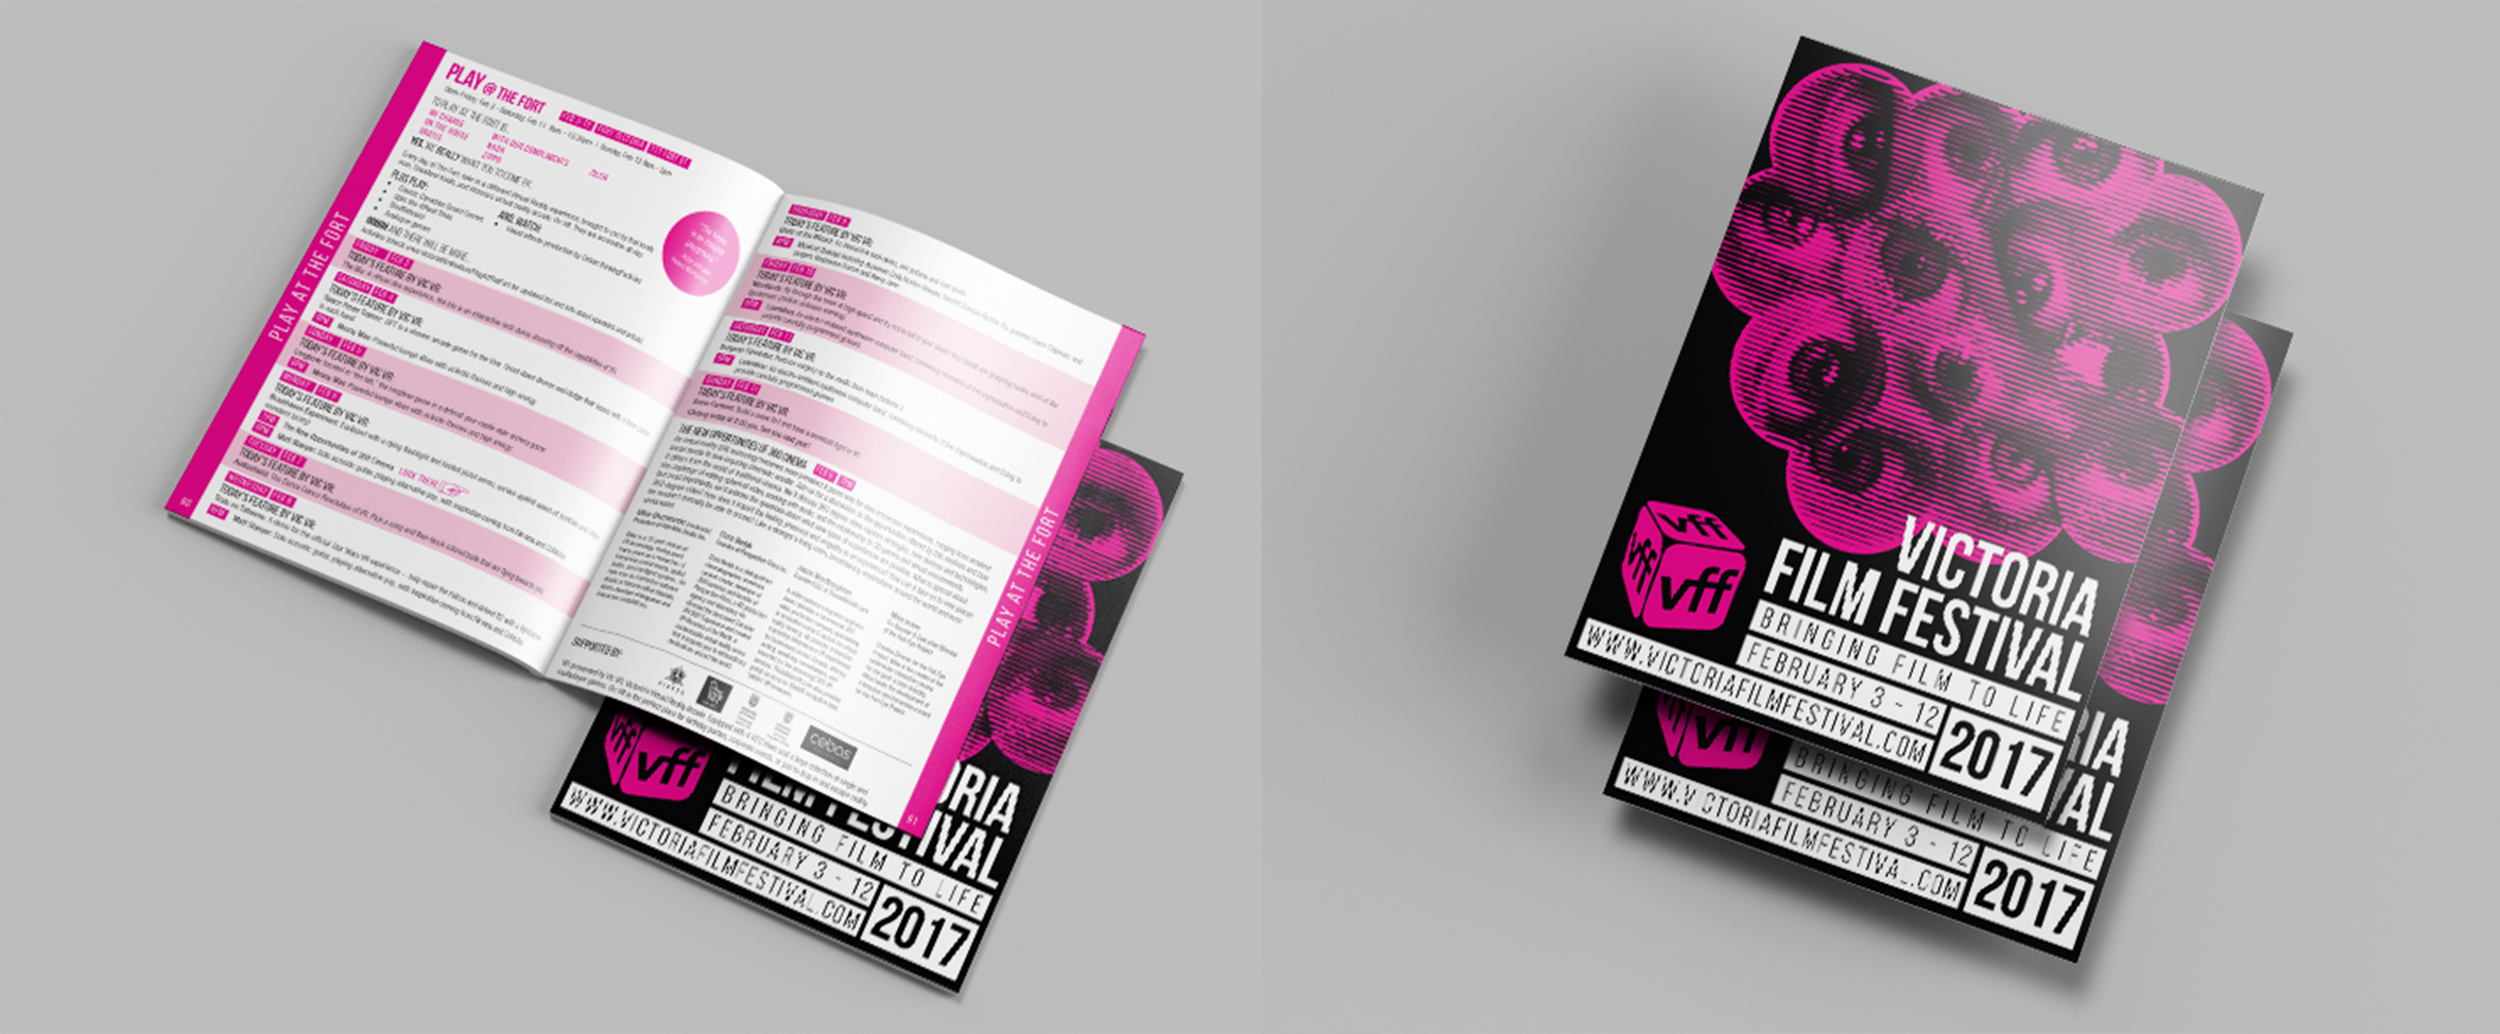 Our Graphic Design Team Also Tackled The 110 Page Program Guide For This Years Film